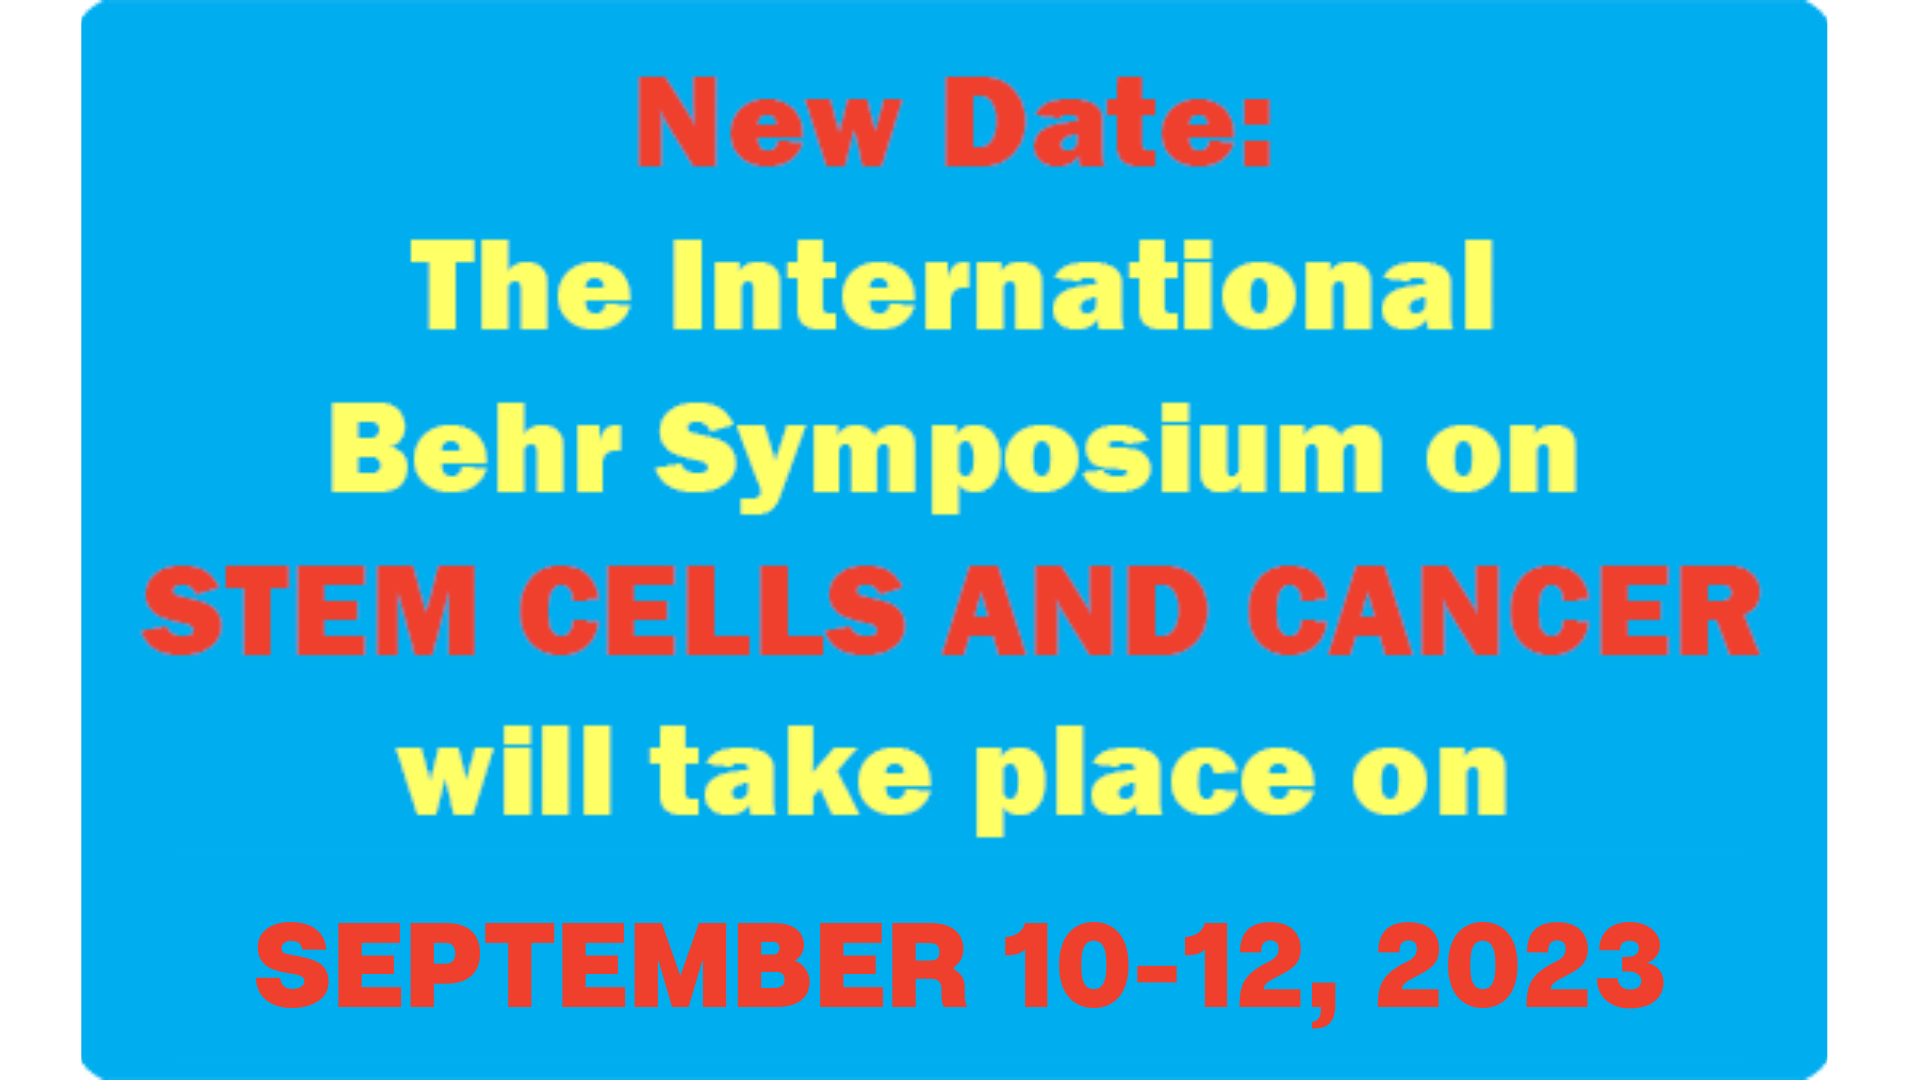 The next International Behr Symposium on Stem Cells and Cancer will take place in September 2021!